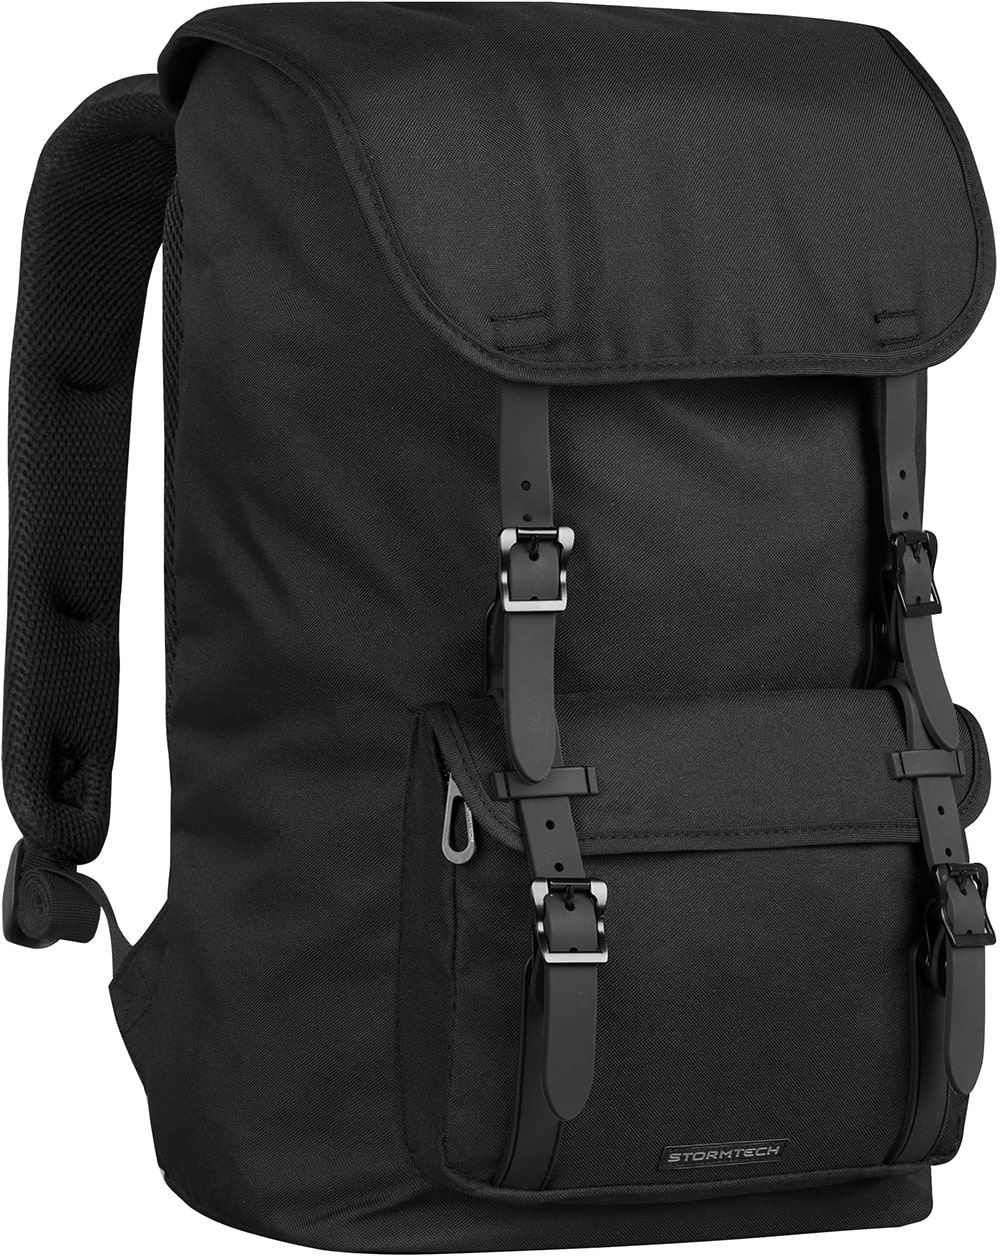 Picture of Stormtech Oasis Backpack